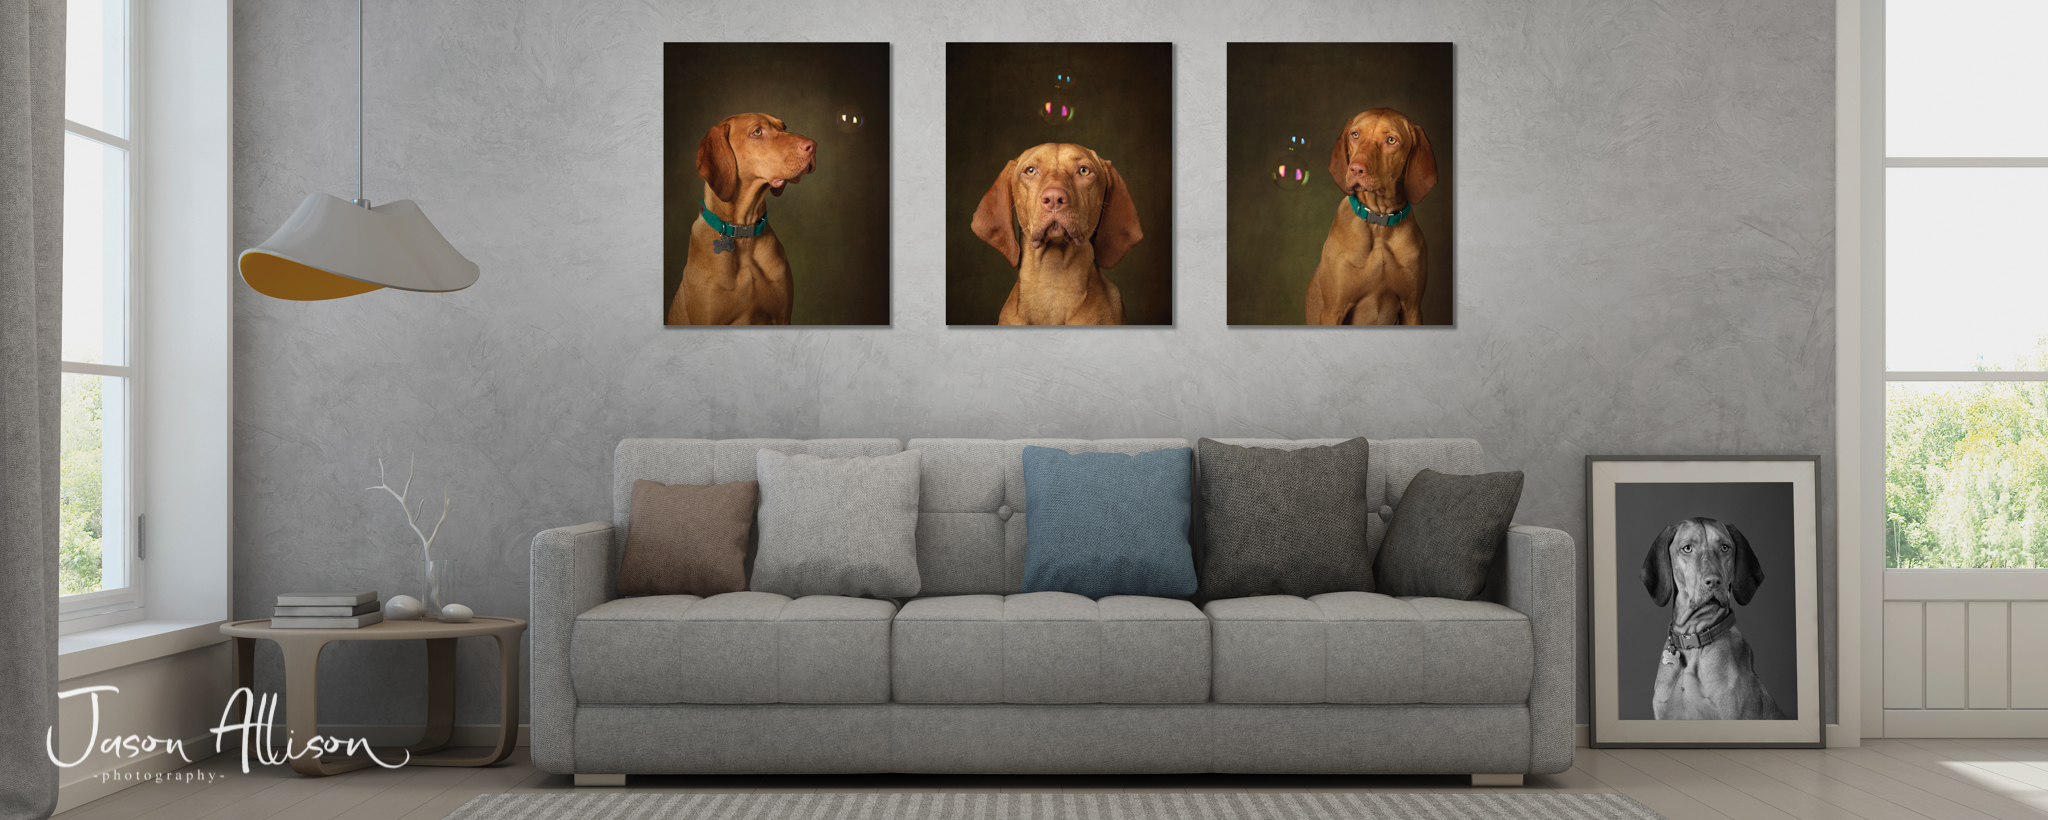 Bubble's Triple wall art by Jason Allison Dog Photography